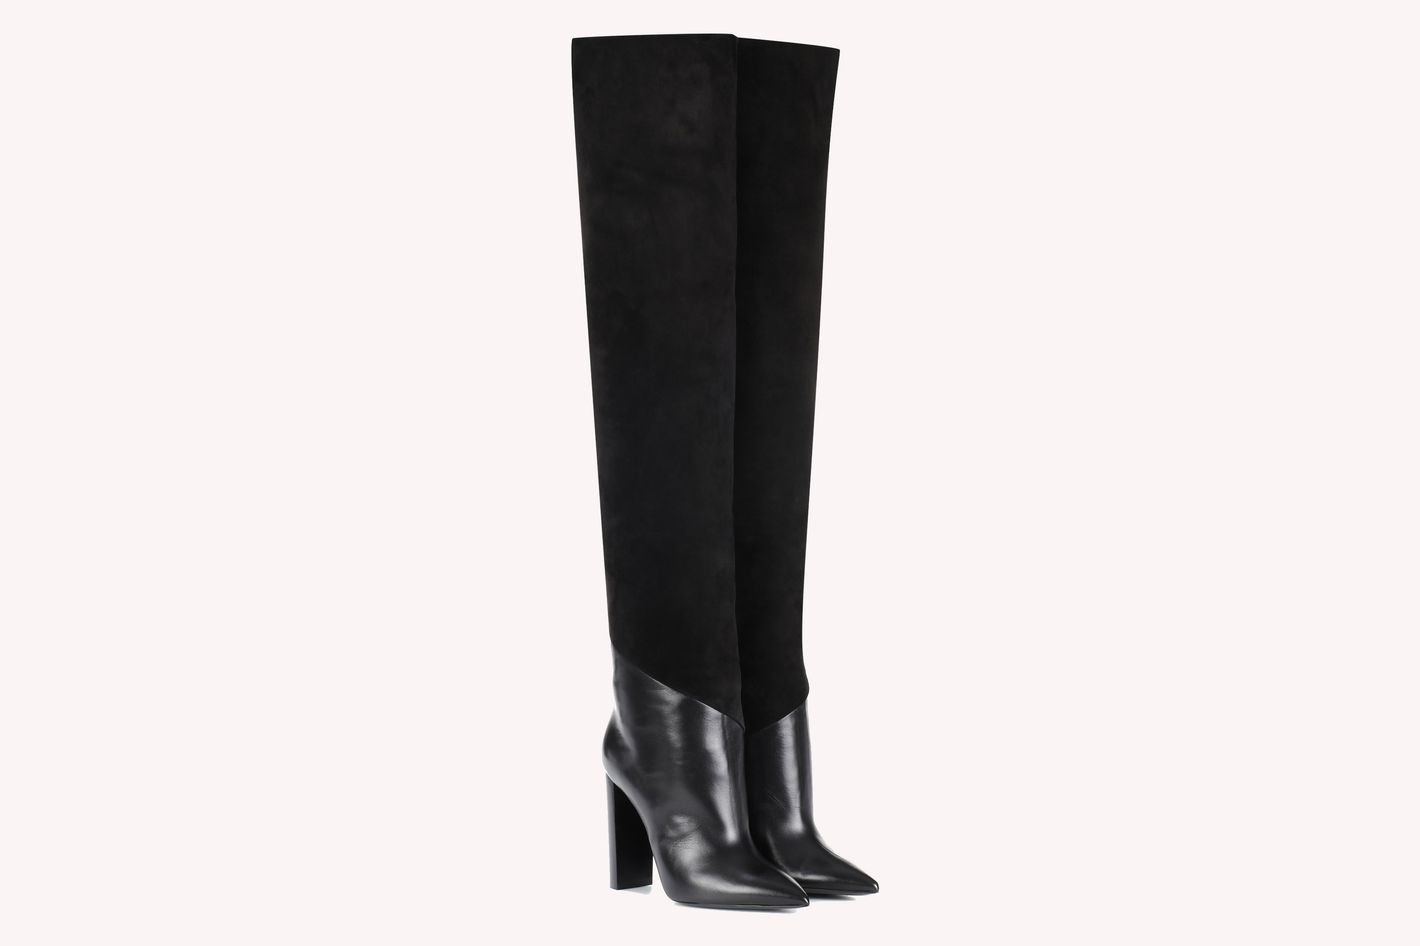 753fb300dfdd1 Saint Laurent Tanger 105 Leather and Suede Over-the-Knee Boots